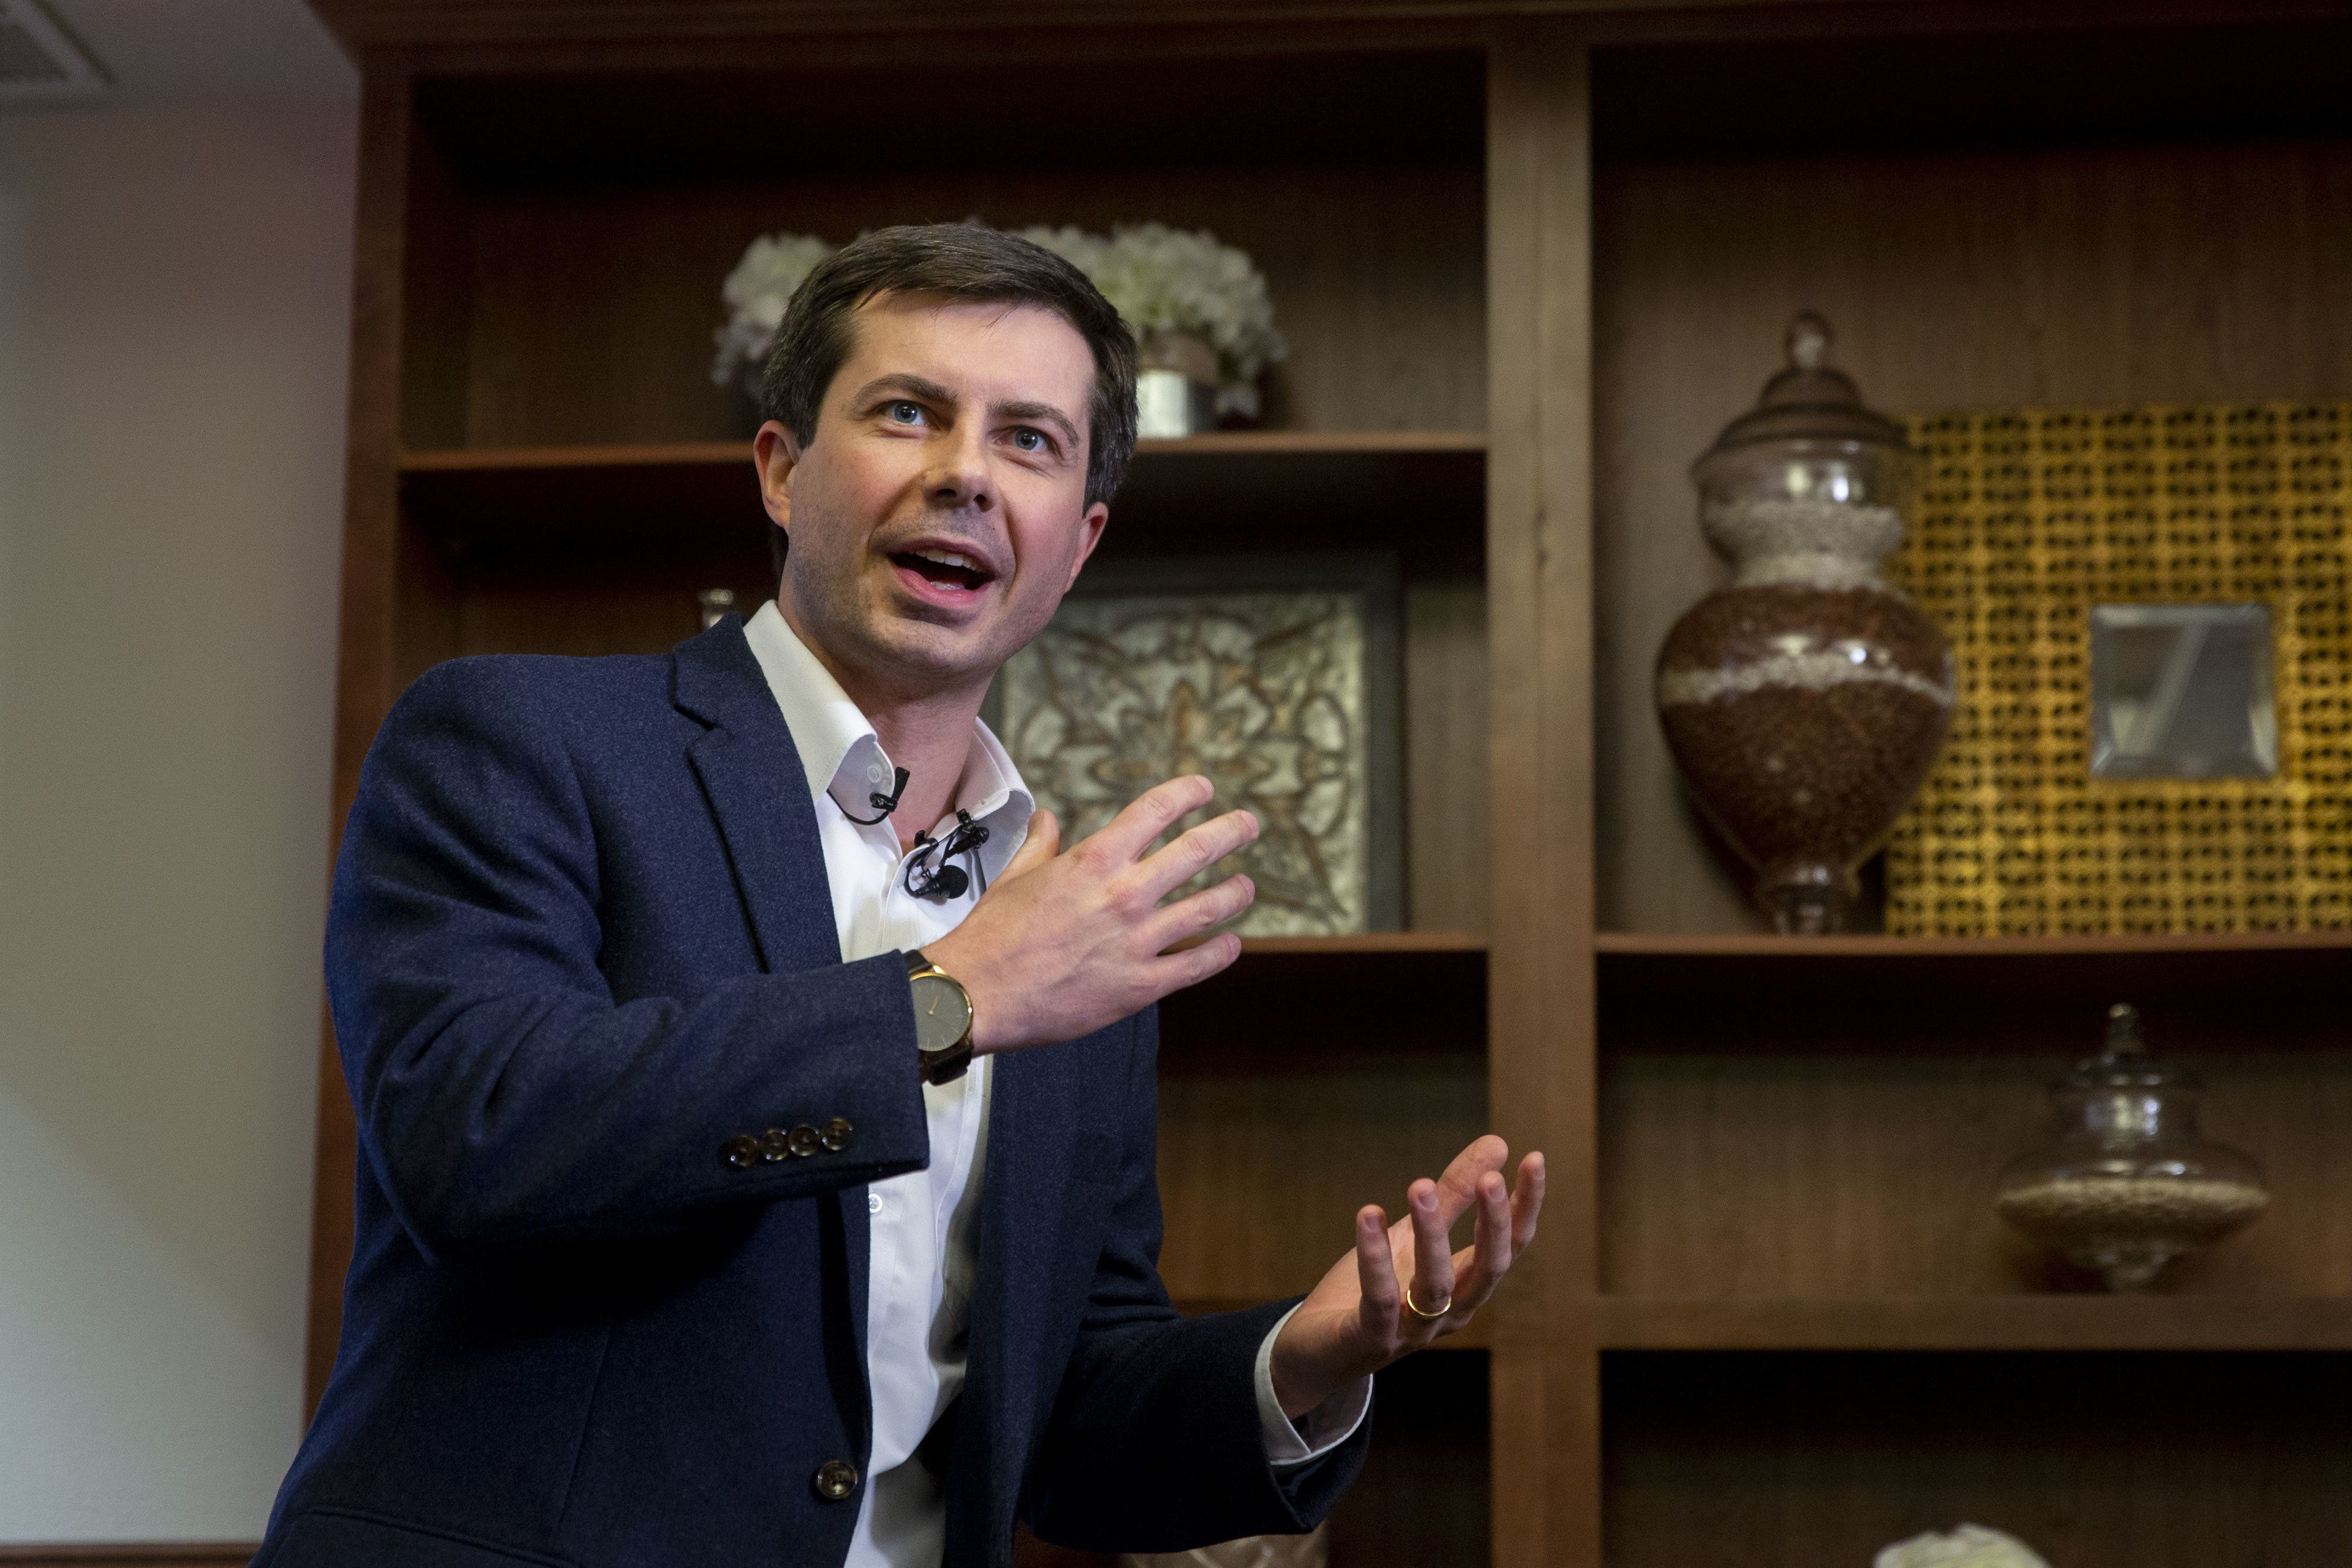 Pete Buttigieg, the mayor of South Bend, Indiana, speaks during a campaign stop in Ankeny, Iowa, U.S., on Friday, Feb. 8, 2019. A flurry of proposals to slap new taxes on the ultra-wealthy, extend Medicare to all Americans and make college debt-free reflect a rapidly changing Democratic Party that sees a sharp left turn as the path to defeating President Donald Trump. Photographer: Daniel Acker/Bloomberg via Getty Images